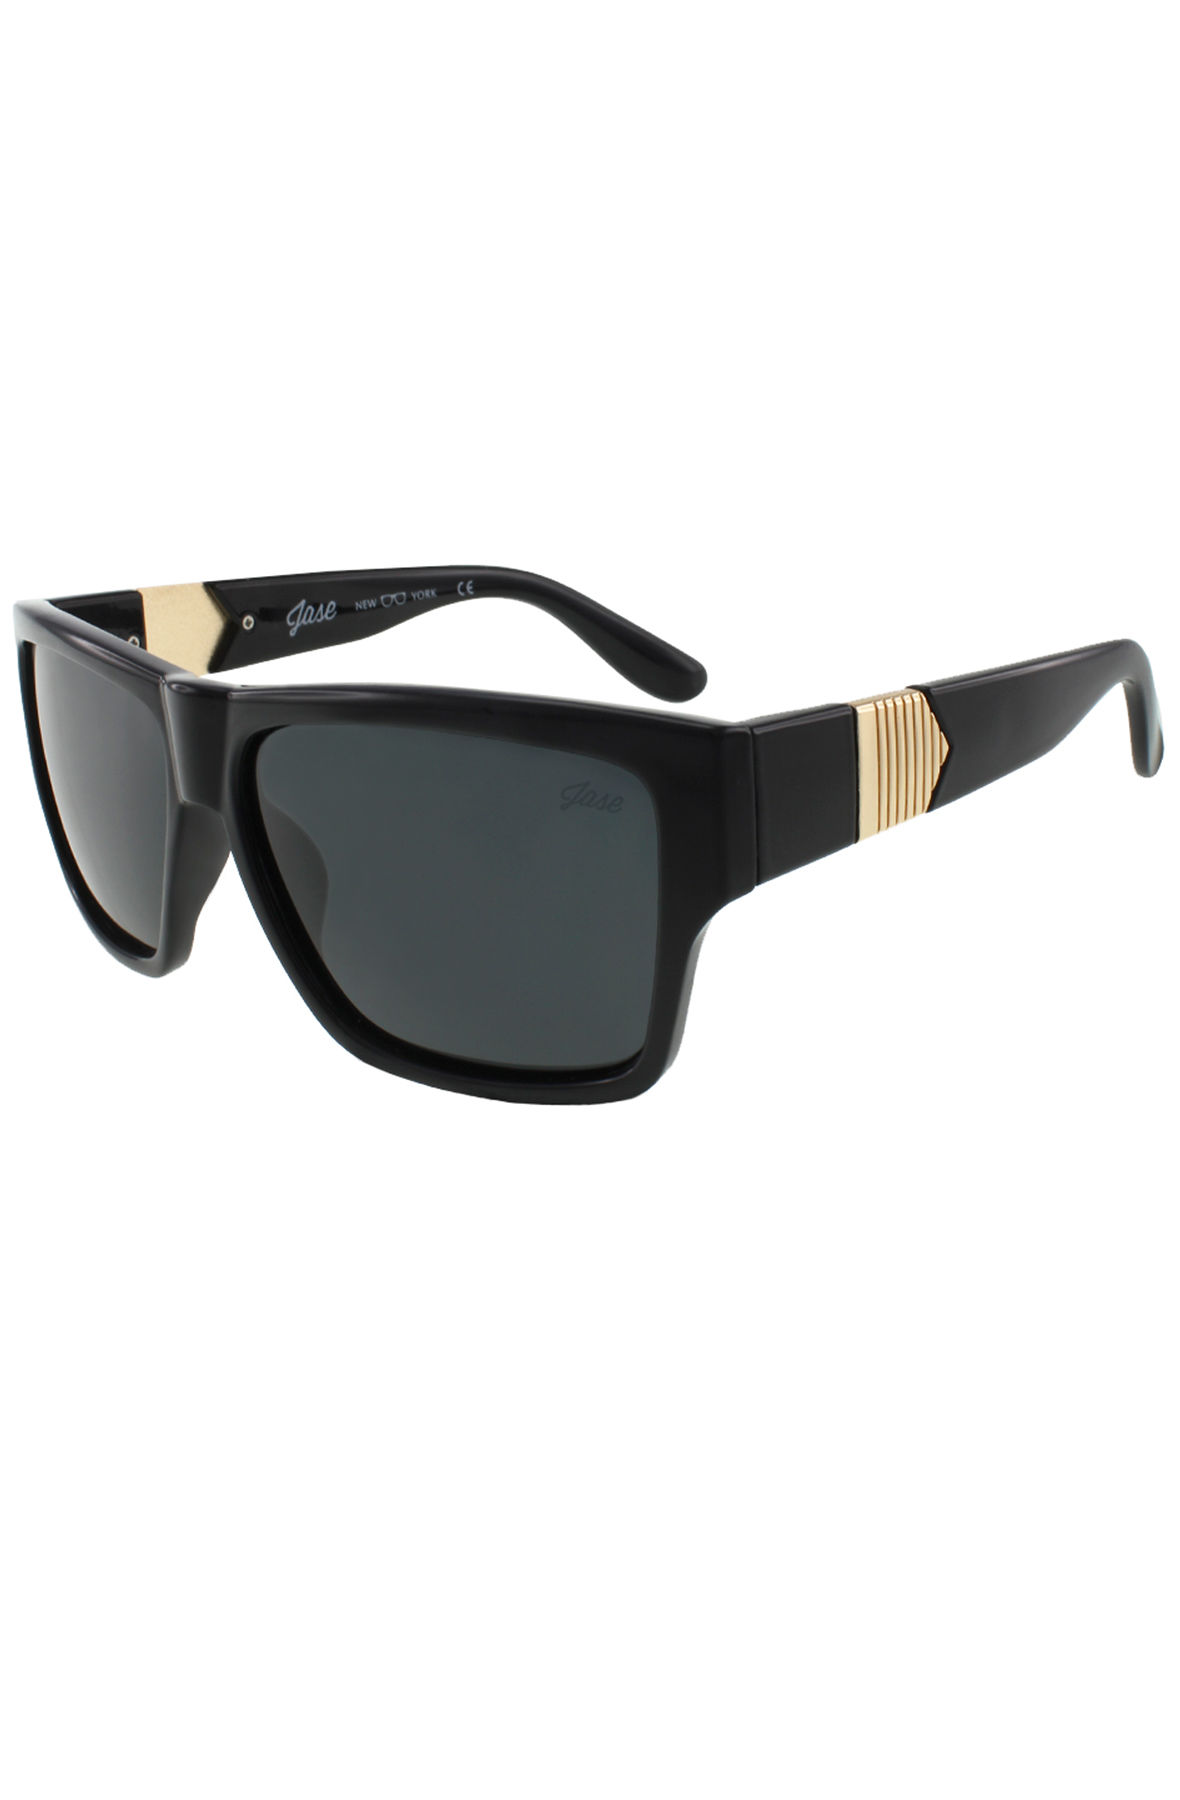 the carter sunglasses in black